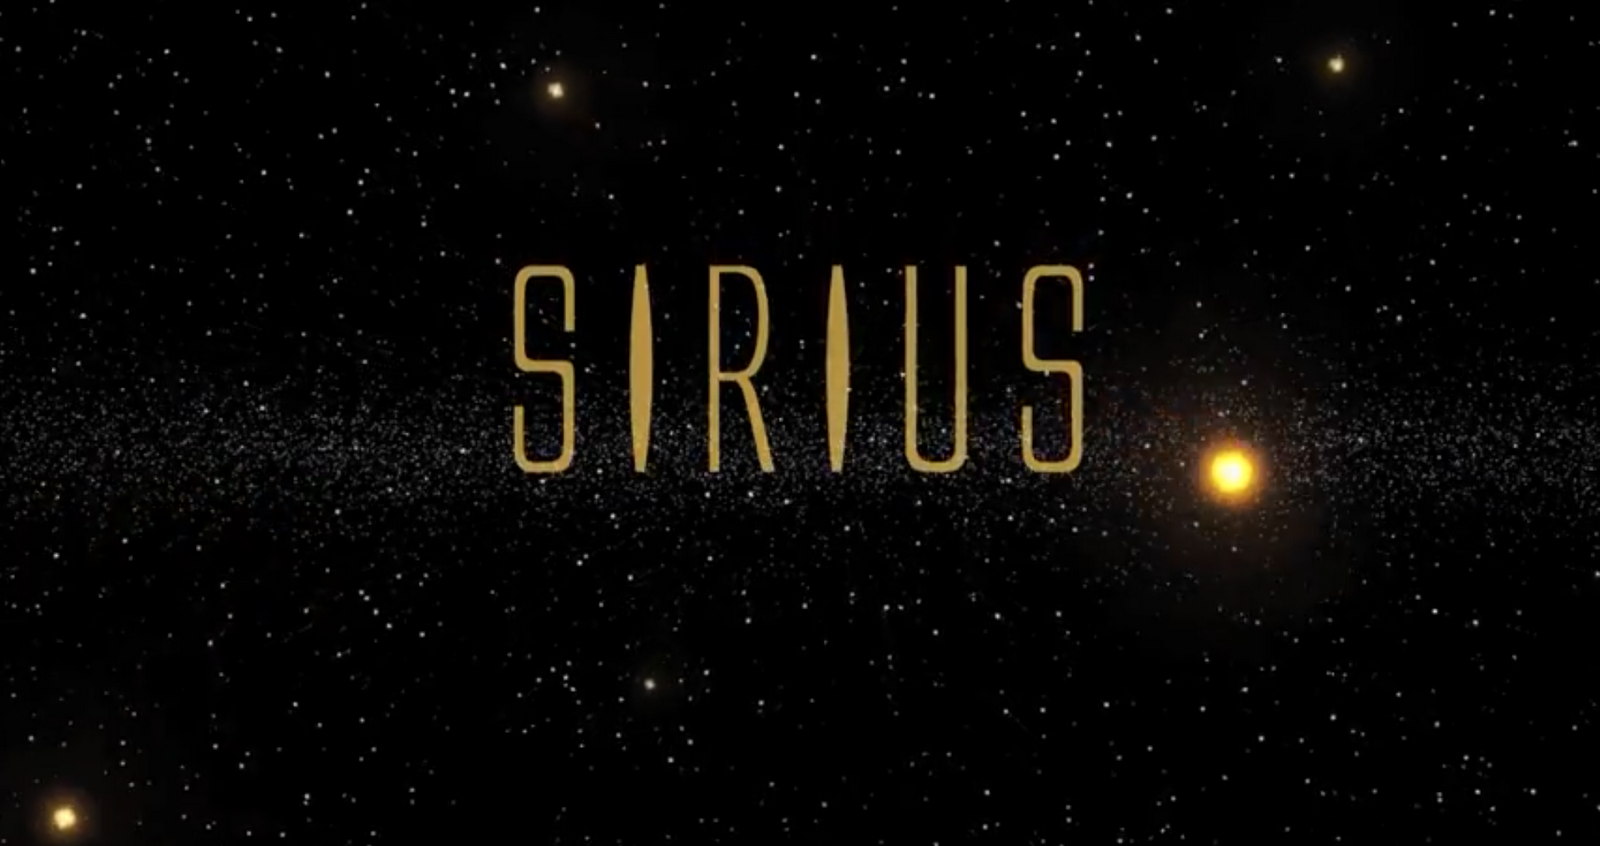 Sirius (Subtitulado Español) (Documental)